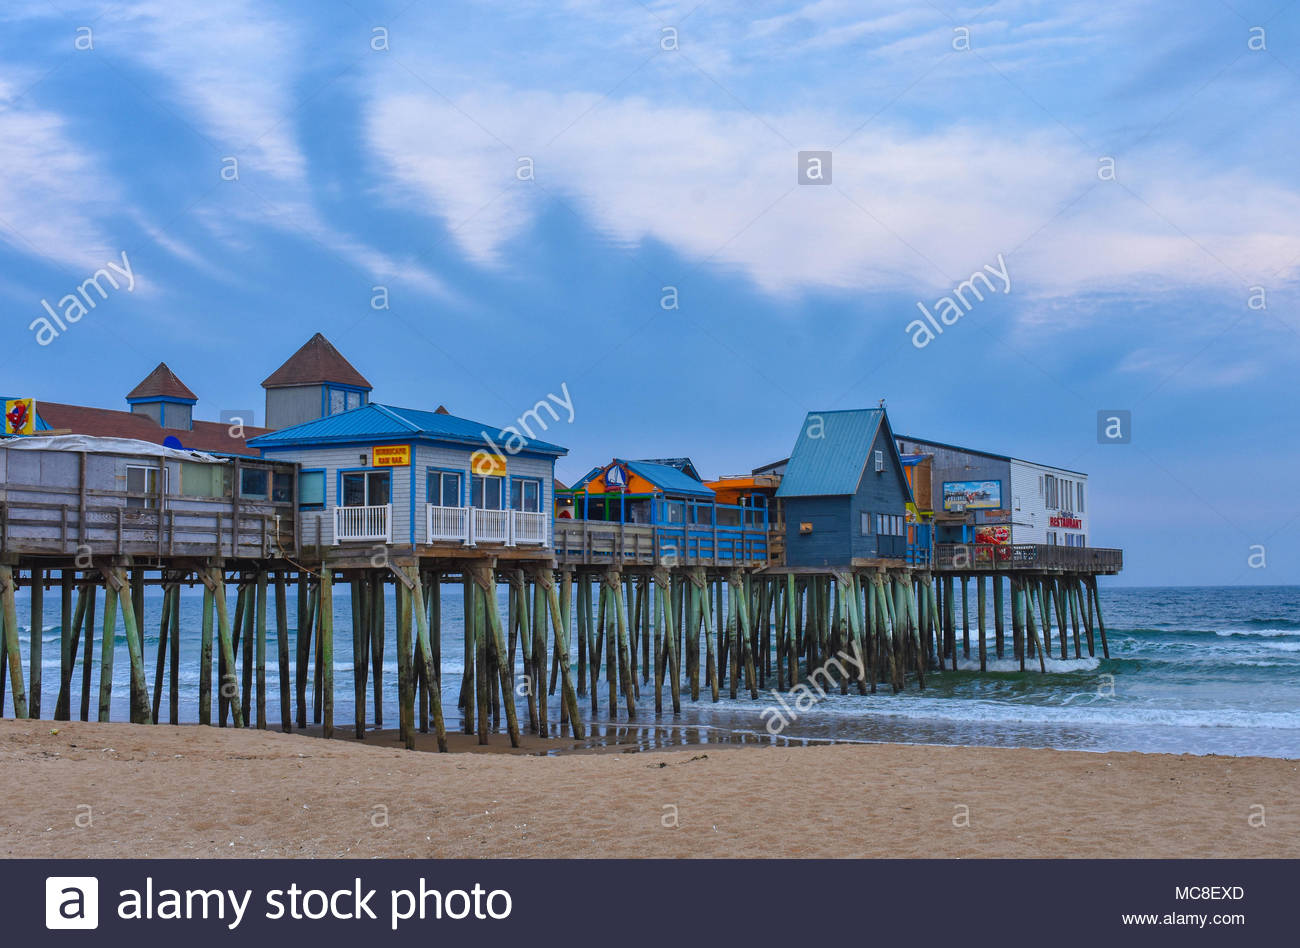 The Pier at Old Orchard Beach (OOB), Maine - Stock Image